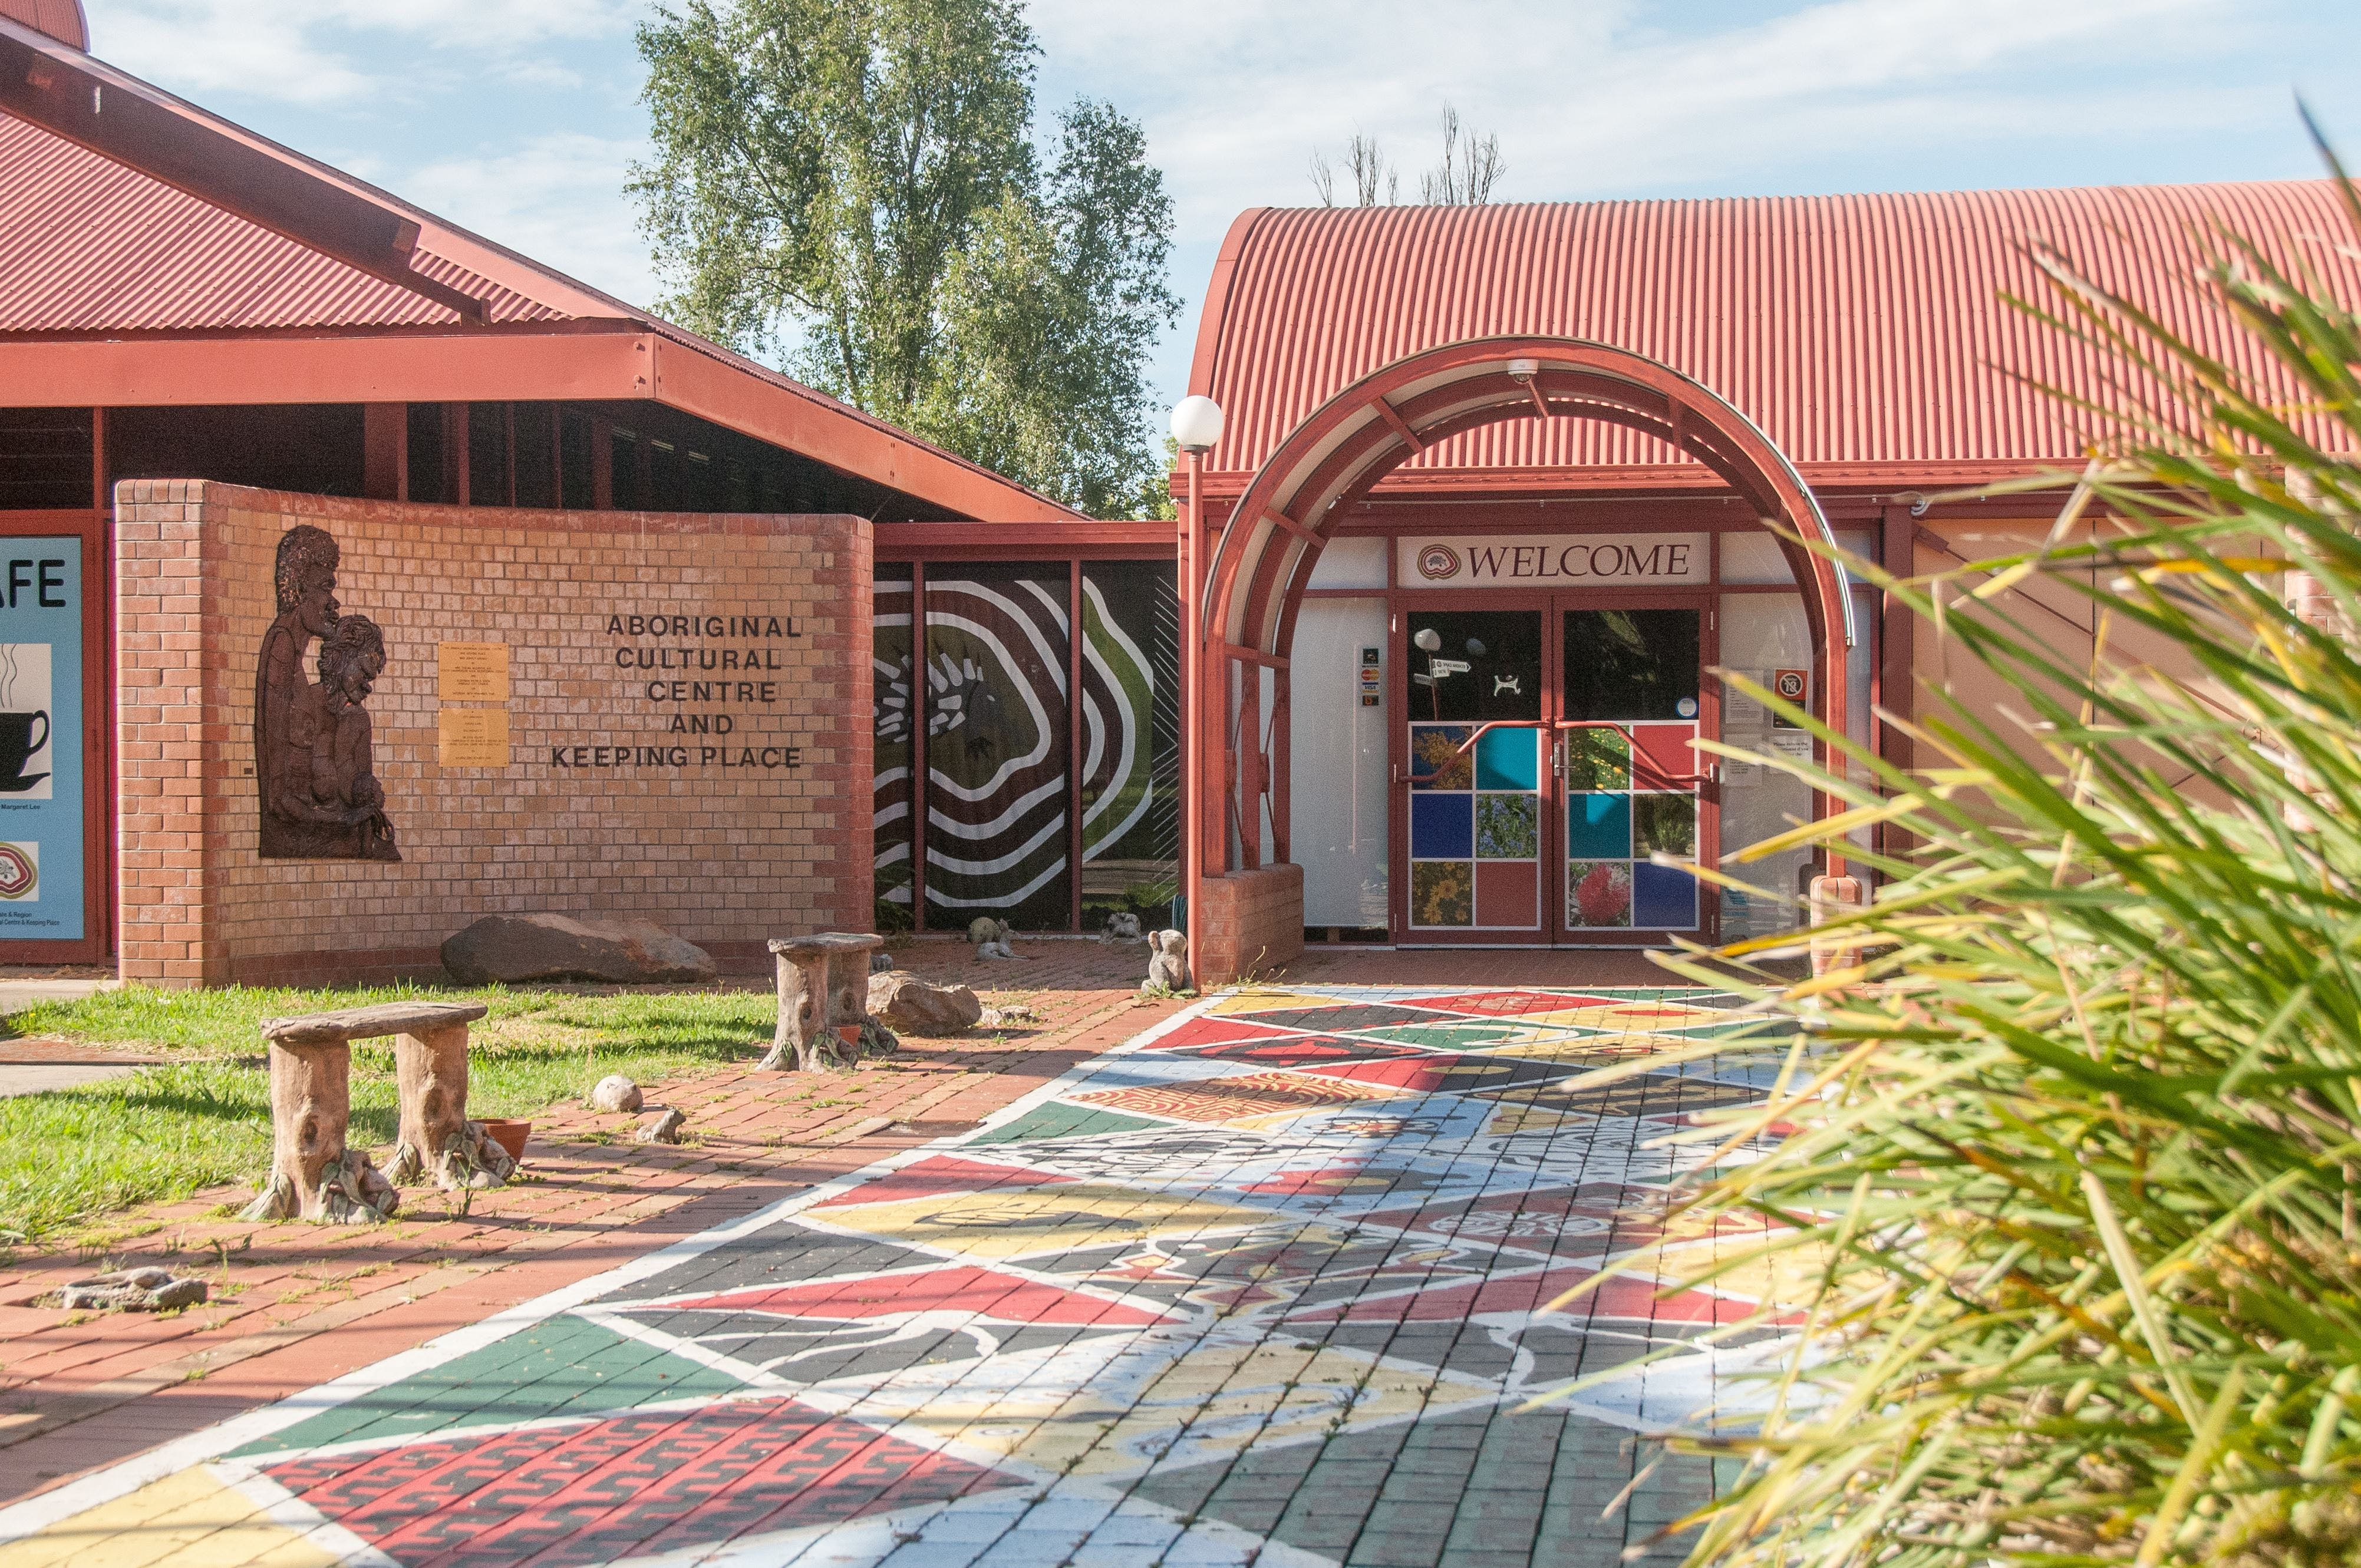 Armidale and Region Aboriginal Cultural Centre and Keeping Place - Tourism Cairns